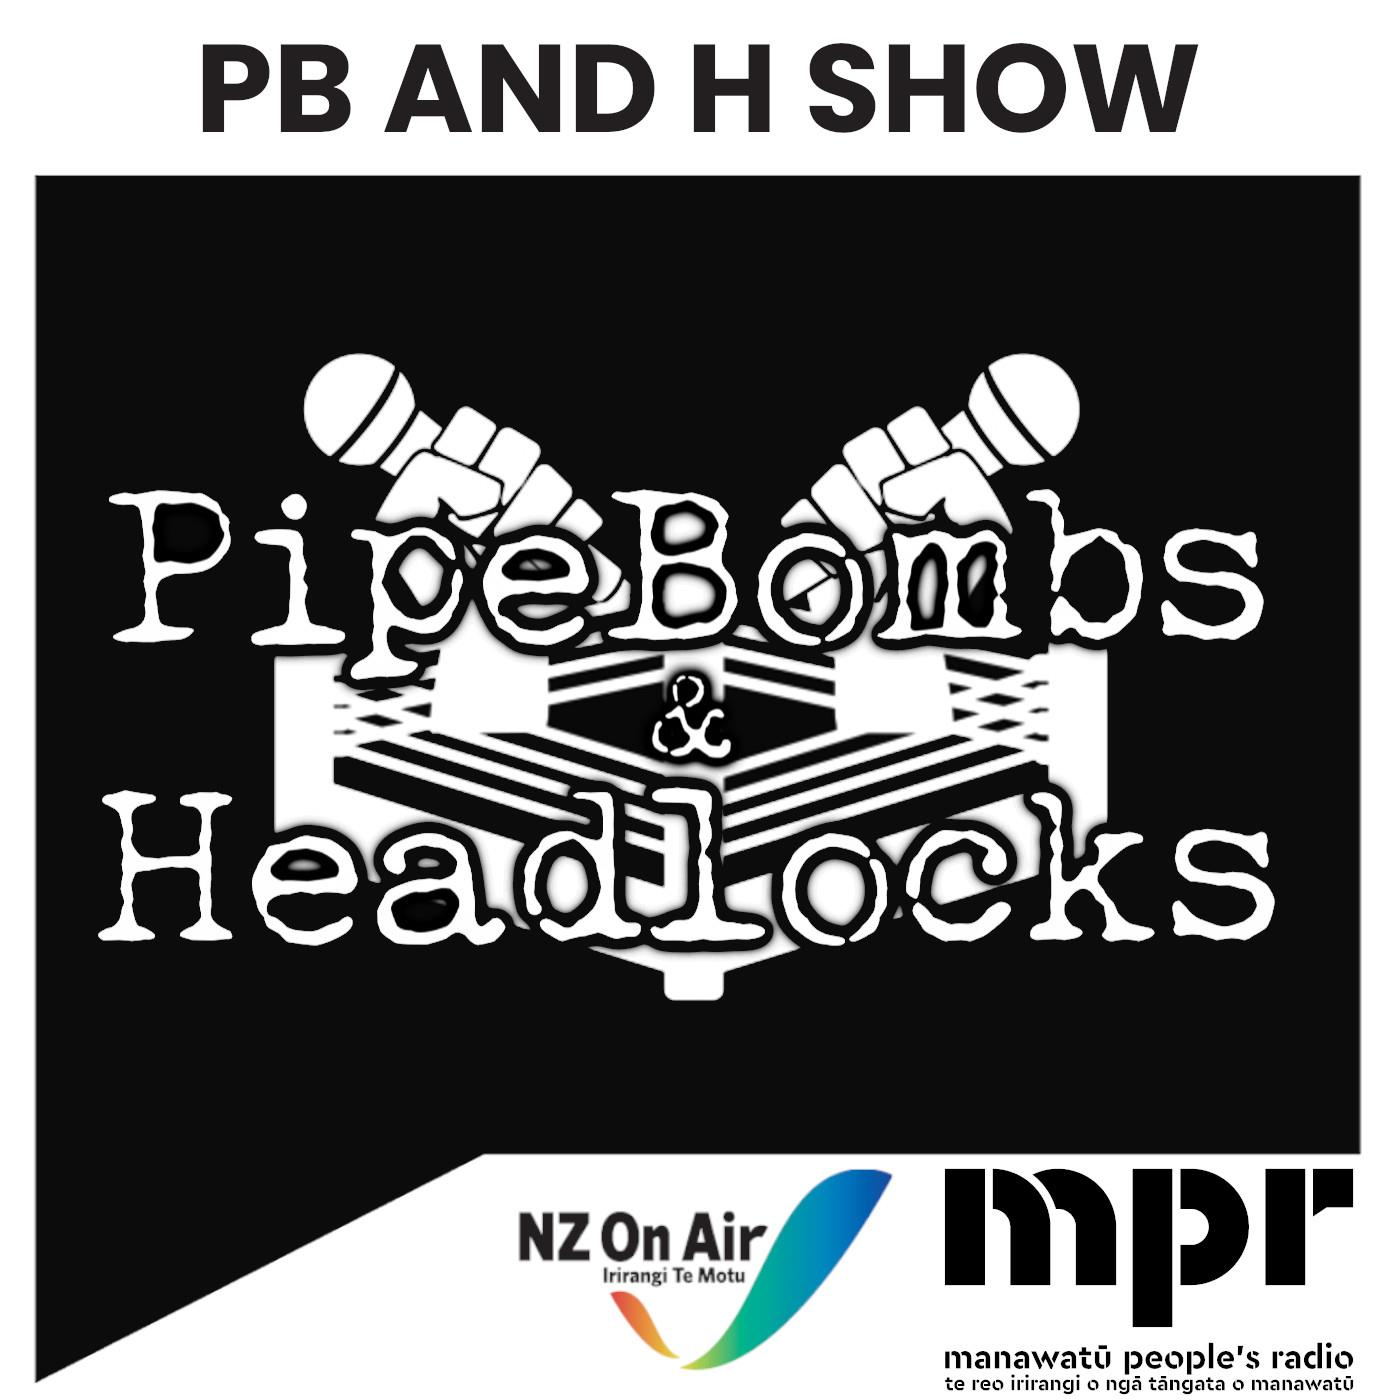 PB and H Show